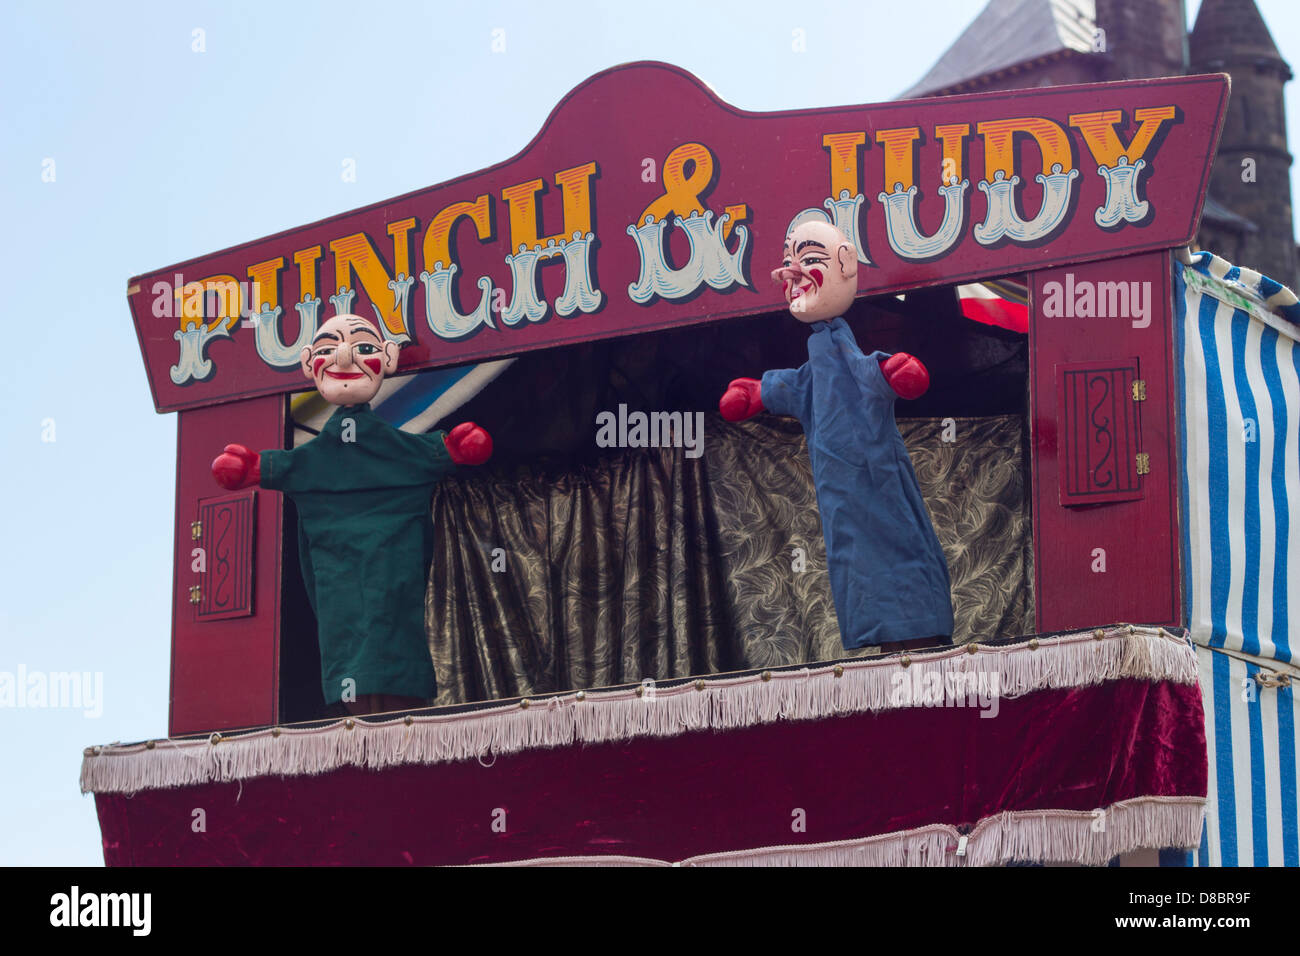 A Punch and Judy show boxer's interlude. - Stock Image